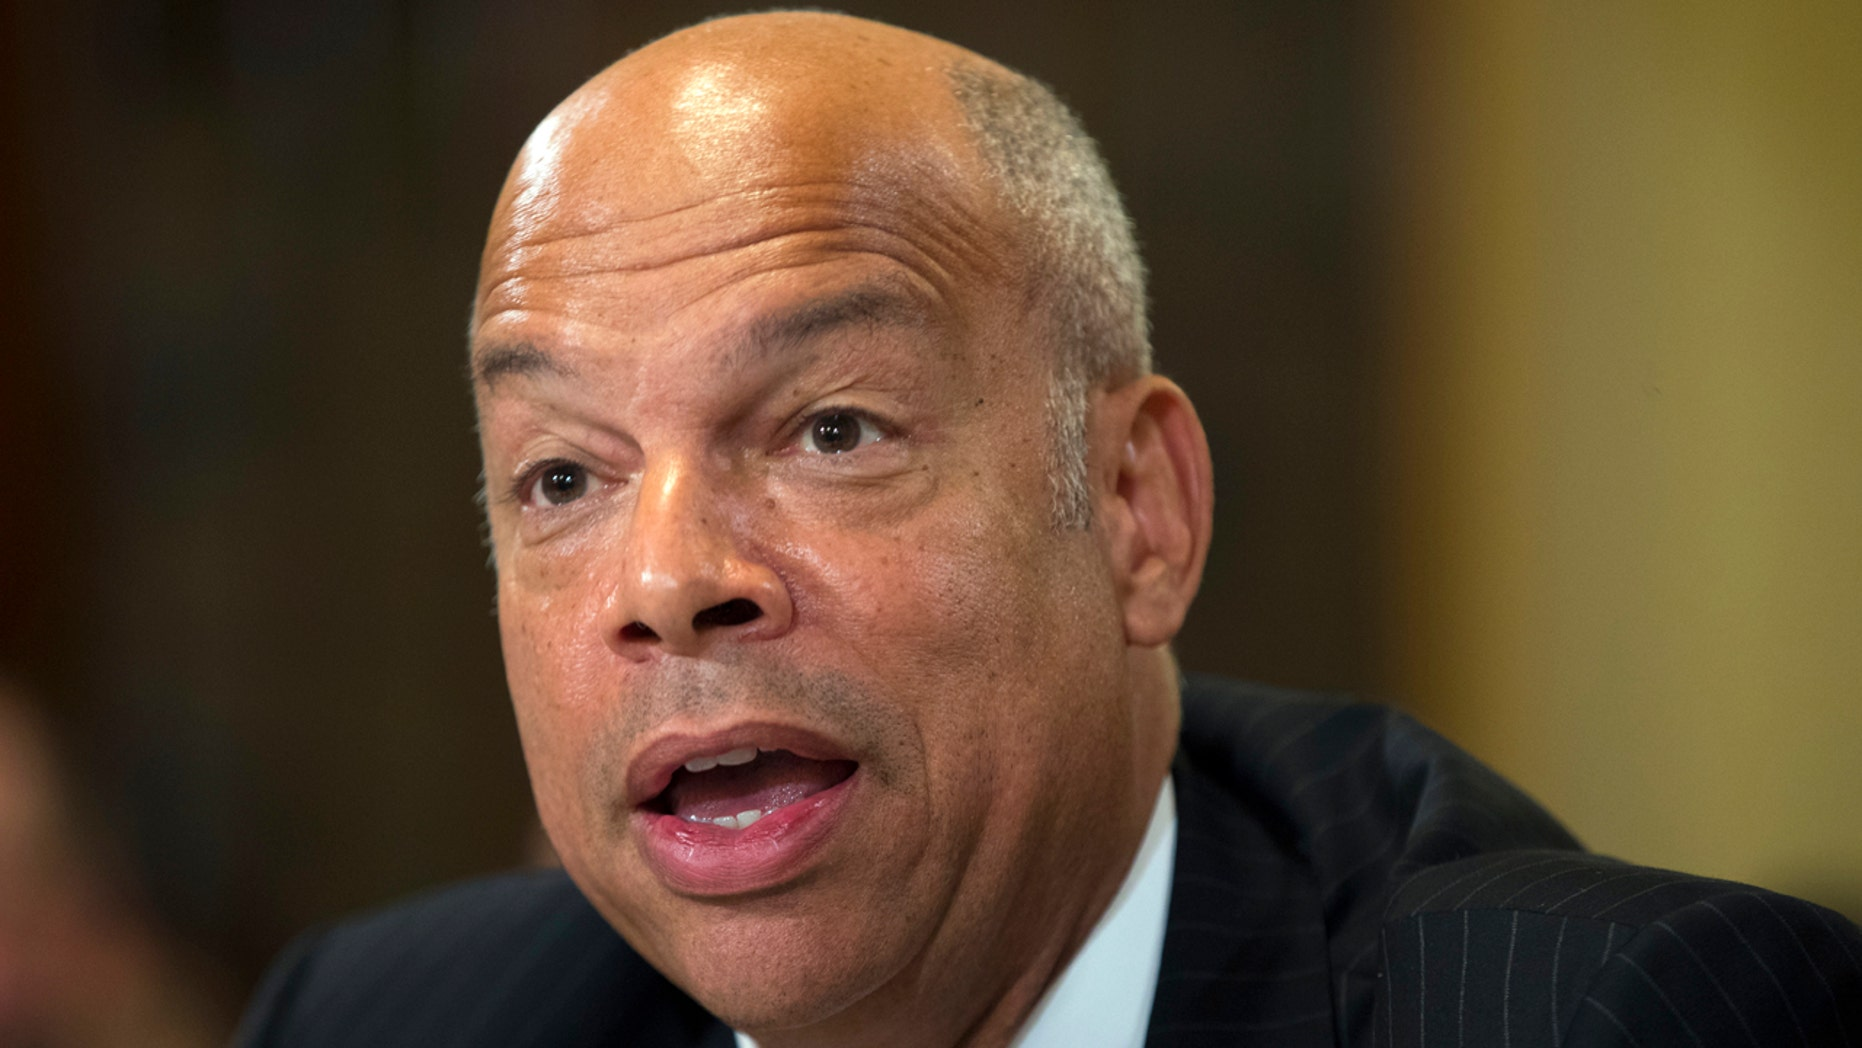 In this July 14, 2016, file photo, then-Homeland Security Secretary Jeh Johnson testifies on Capitol Hill in Washington. Johnson faces questions on june 21, 2017,